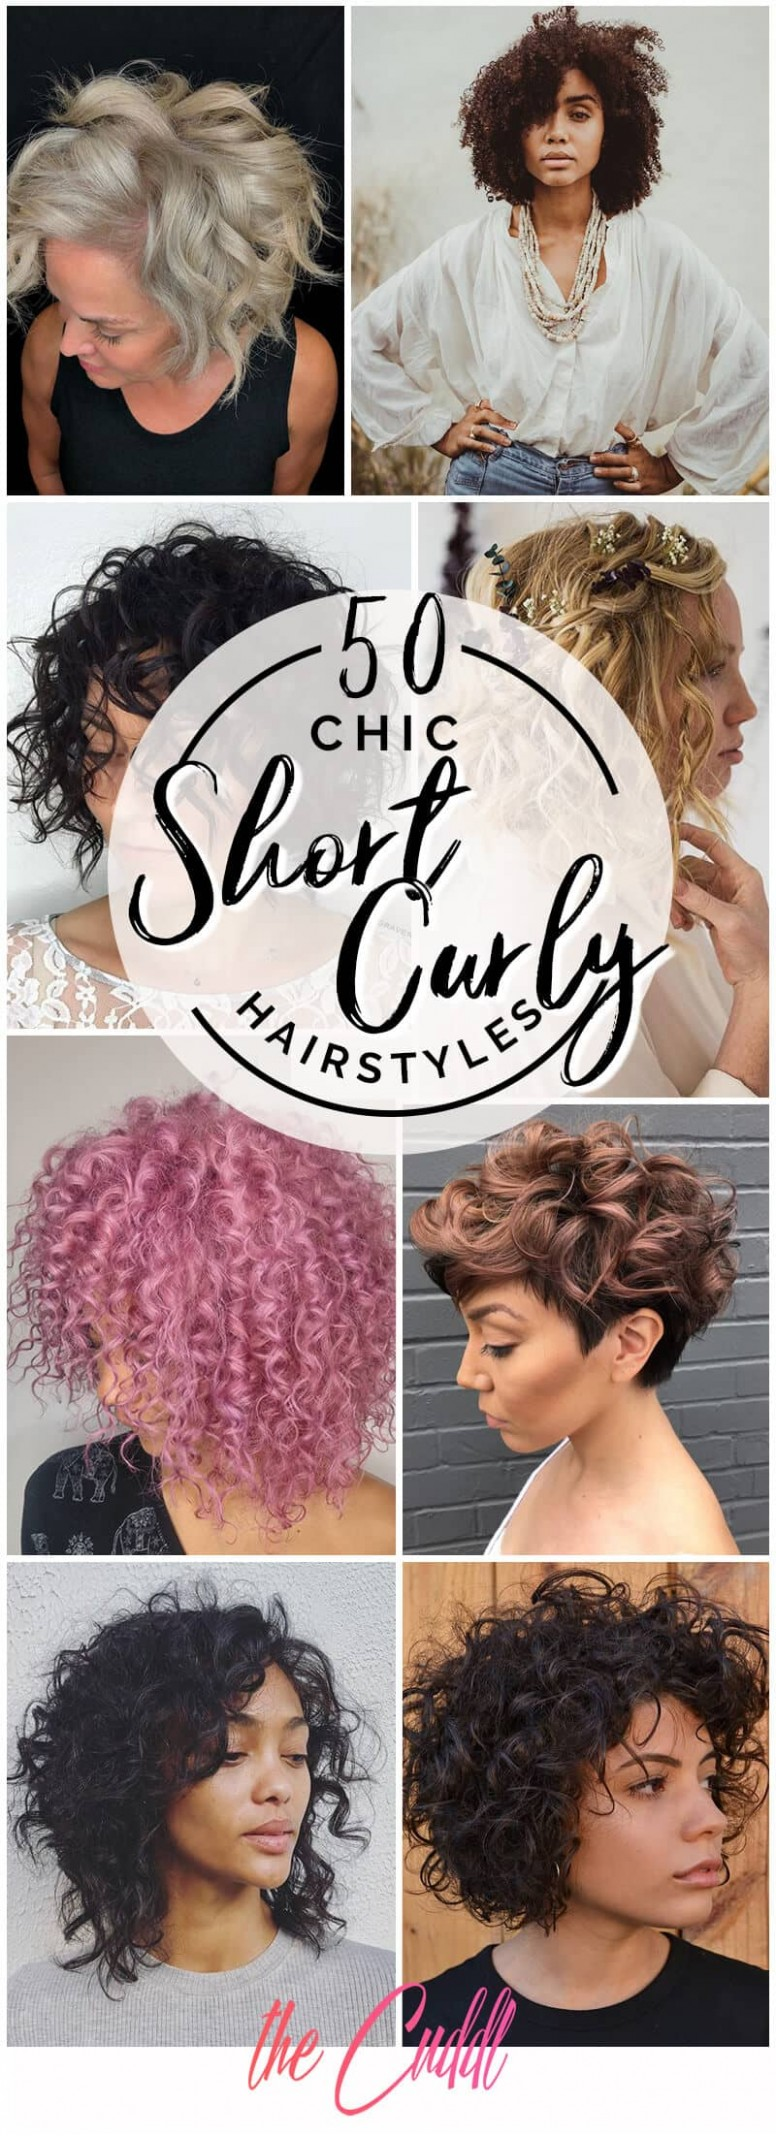 12 Short Curly Hair Ideas to Step Up Your Style Game in 12